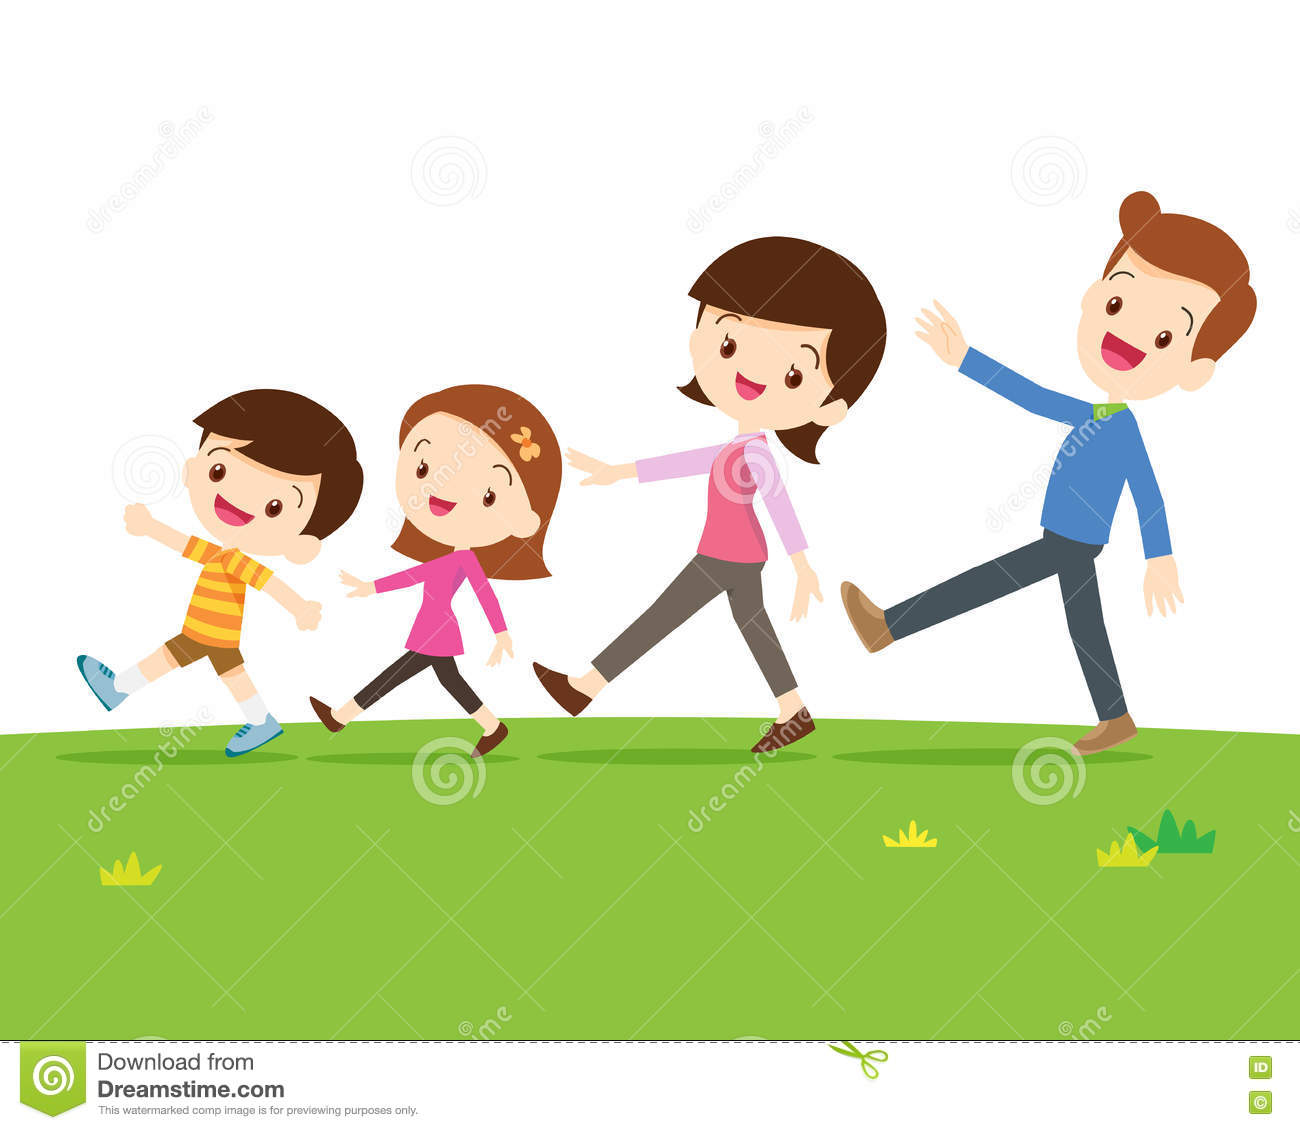 Cute Family Walking Stock Vector Illustration Of Together 75255668 Rh Dreamstime Com Mountain Hiking Clip Art Free